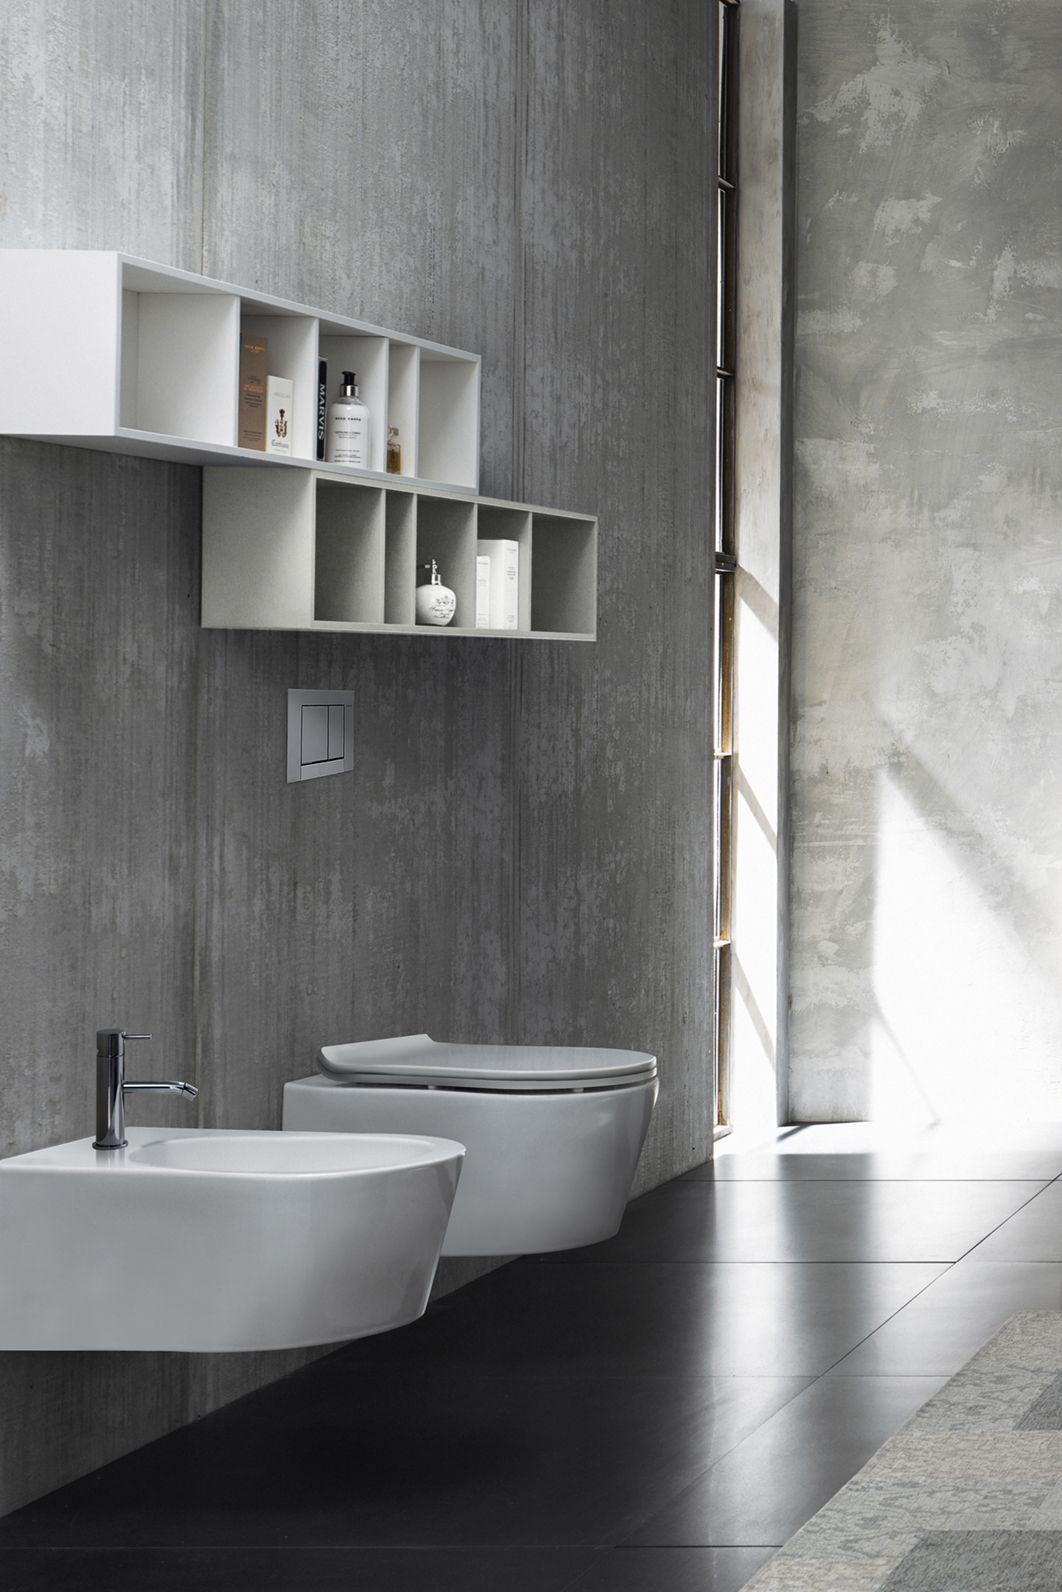 Decor N Tile Unique Rad New Rimless Wallmount Toilet Is Compact Stylish And Leaves Design Ideas